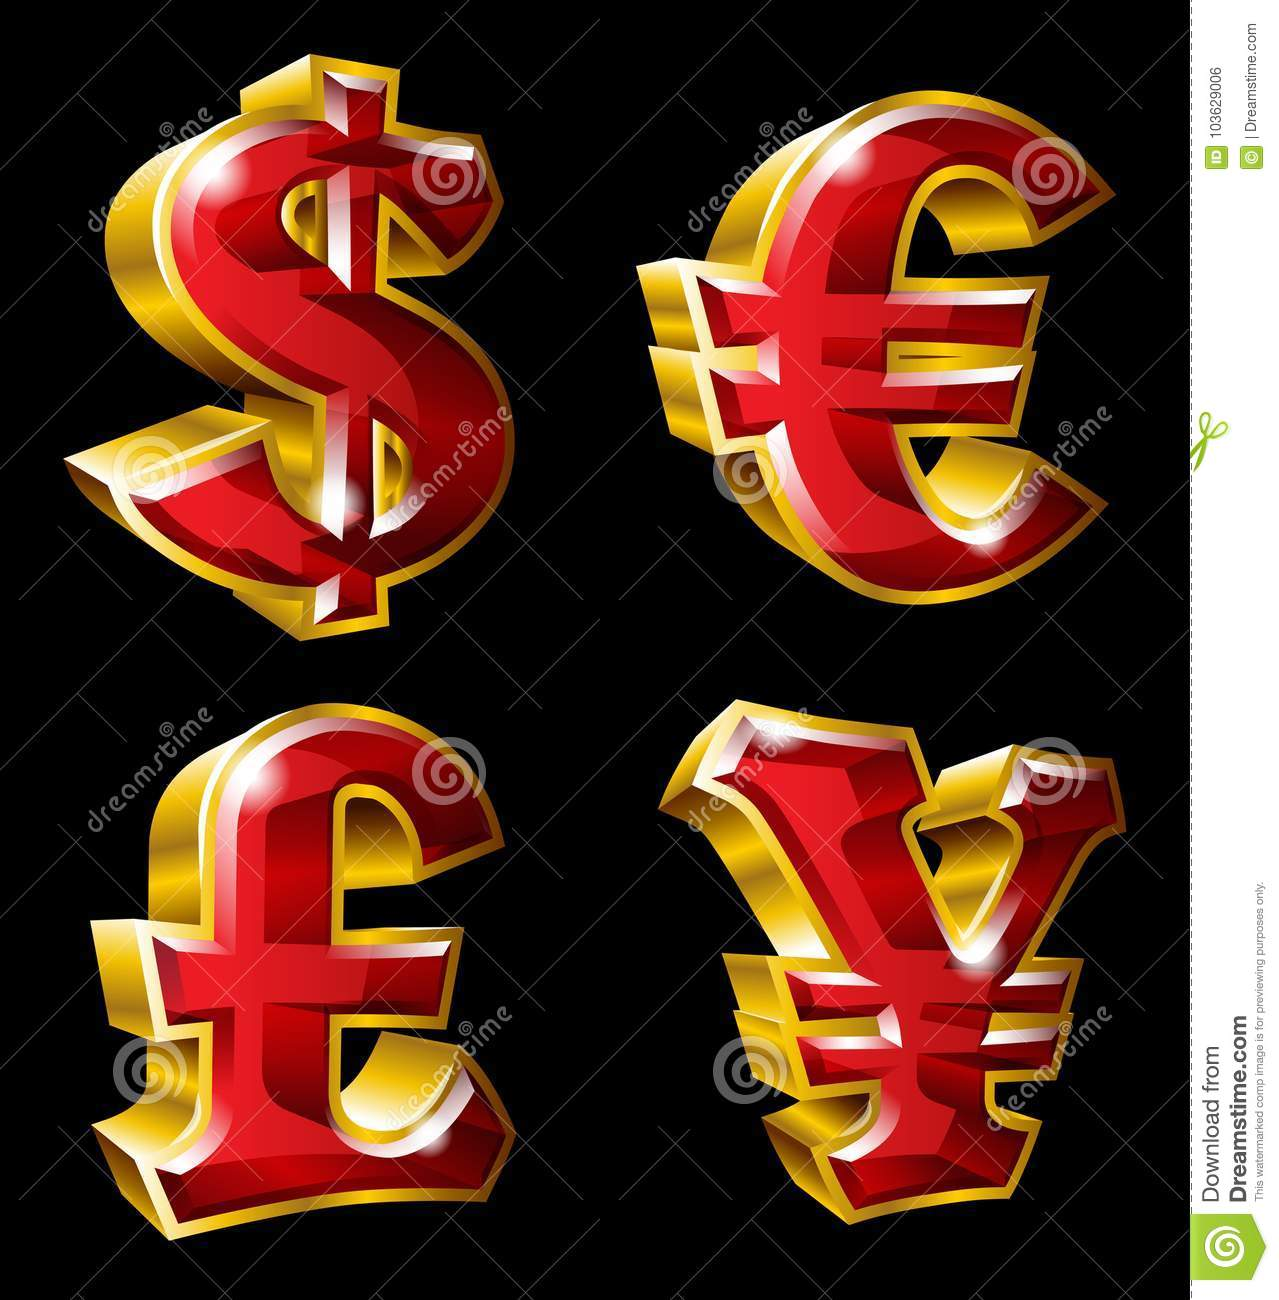 Main Currency Symbols Stock Vector Illustration Of Cash 103629006